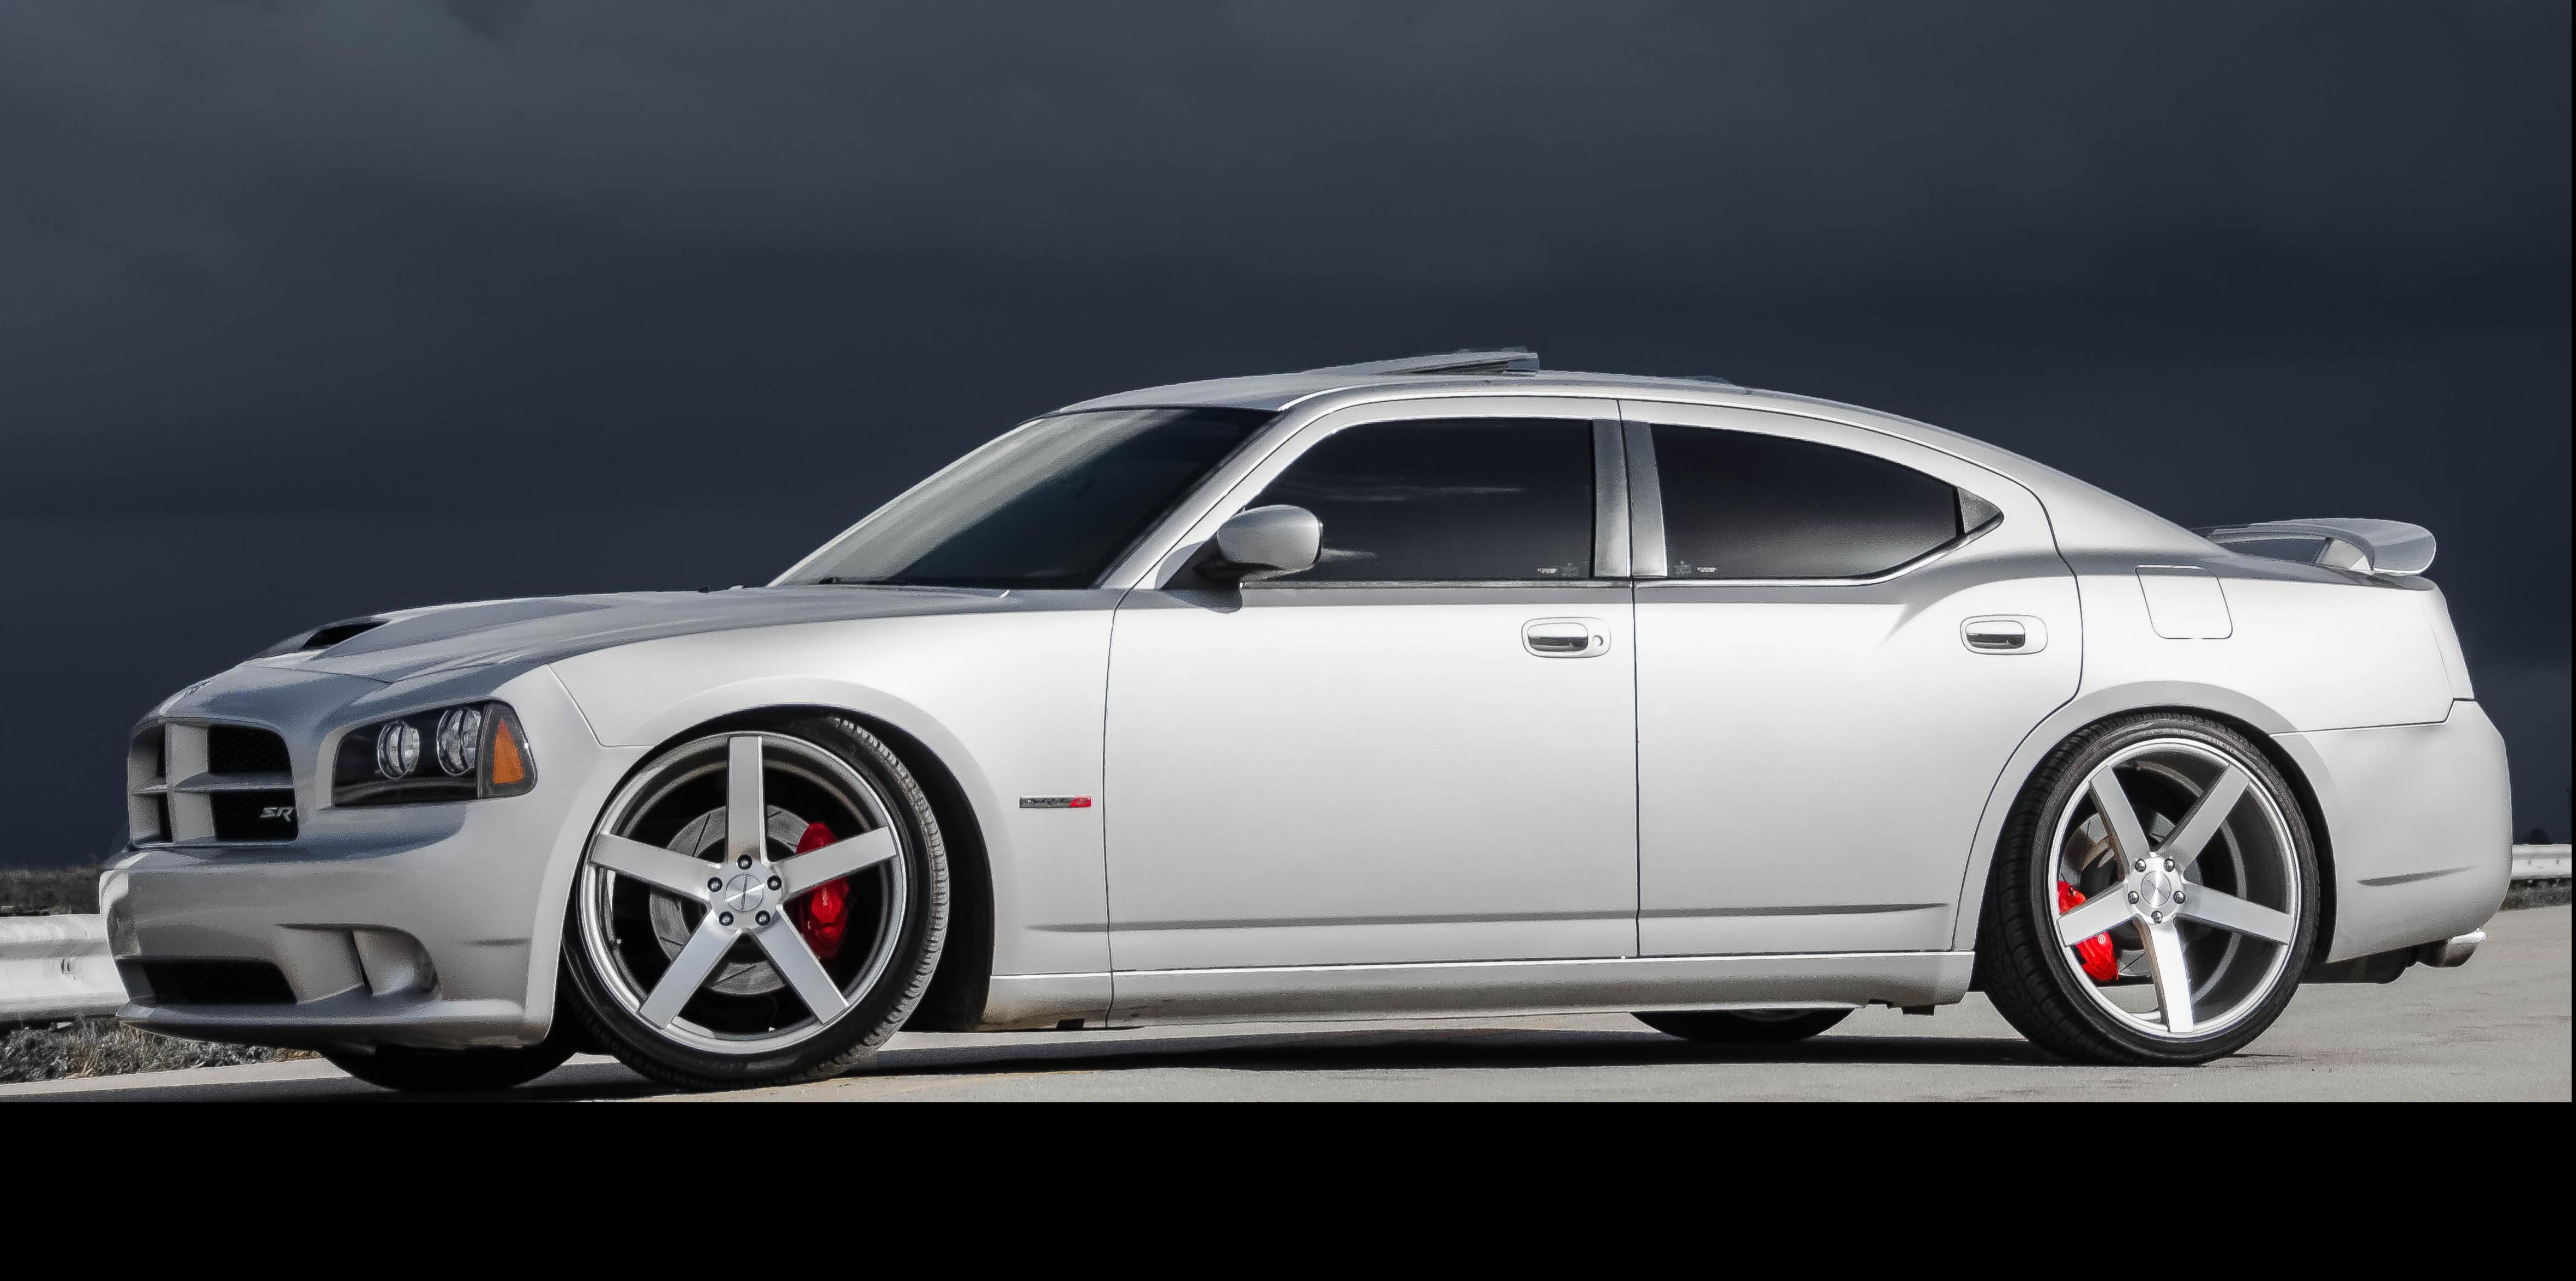 sheila_white's 2006 Dodge Charger